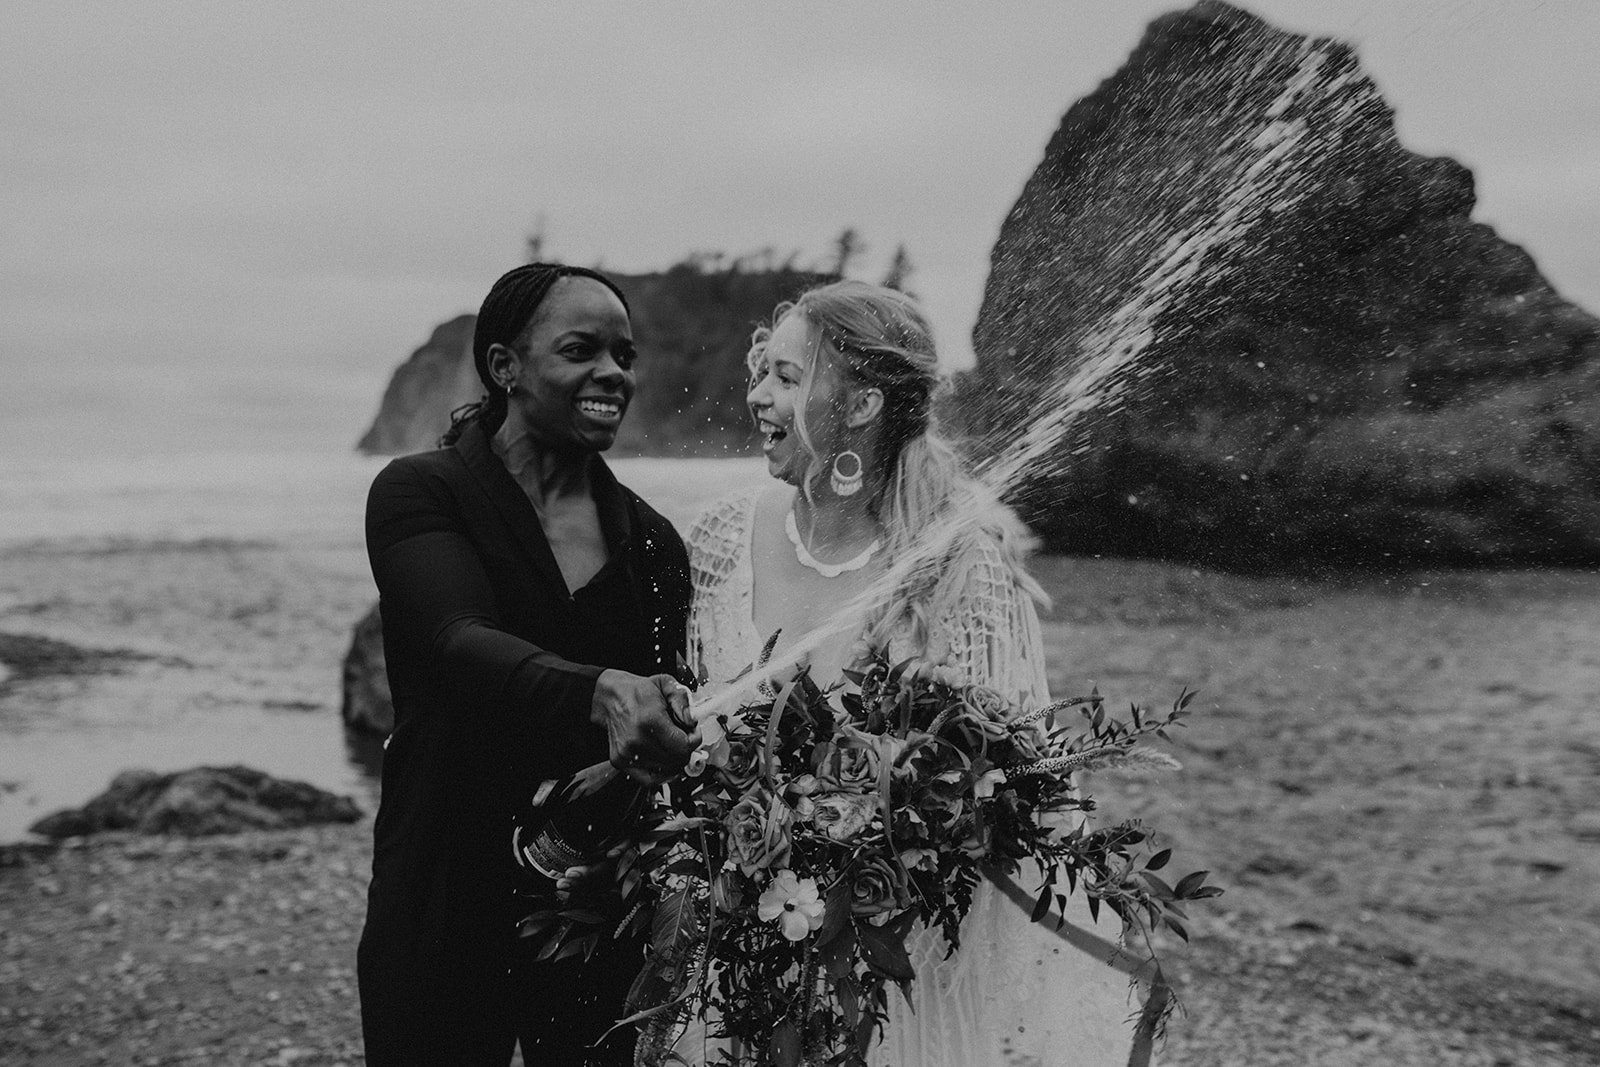 Ruby_Beach_Styled_Elopement_-_Run_Away_with_Me_Elopement_Collective_-_Kamra_Fuller_Photography_-_Champagne-14